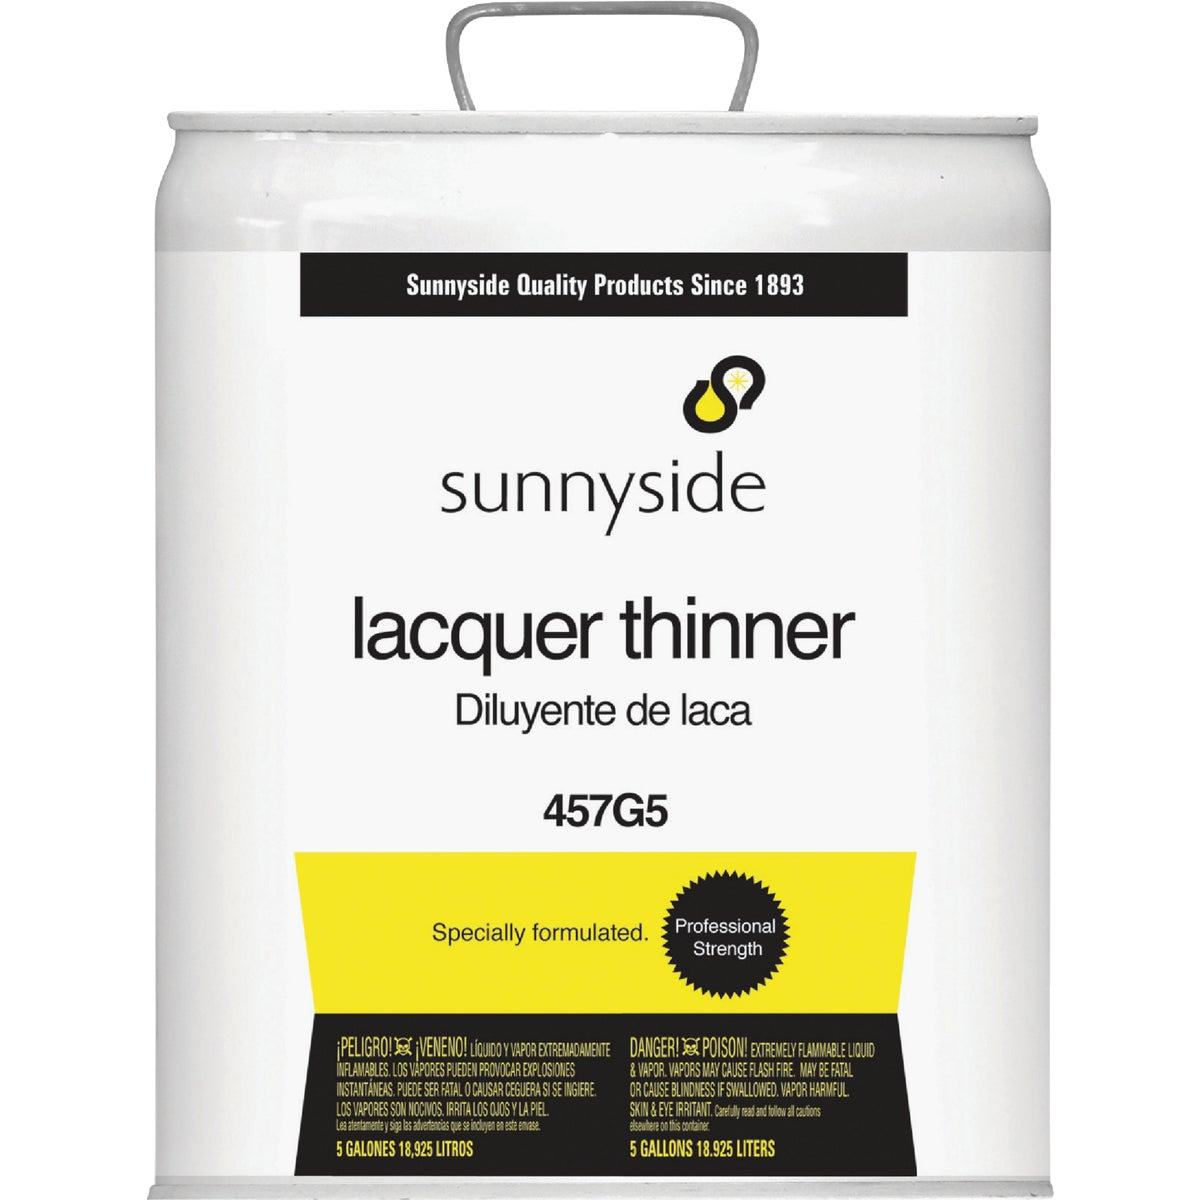 Sunnyside Corp. LACQUER THINNER 457G5